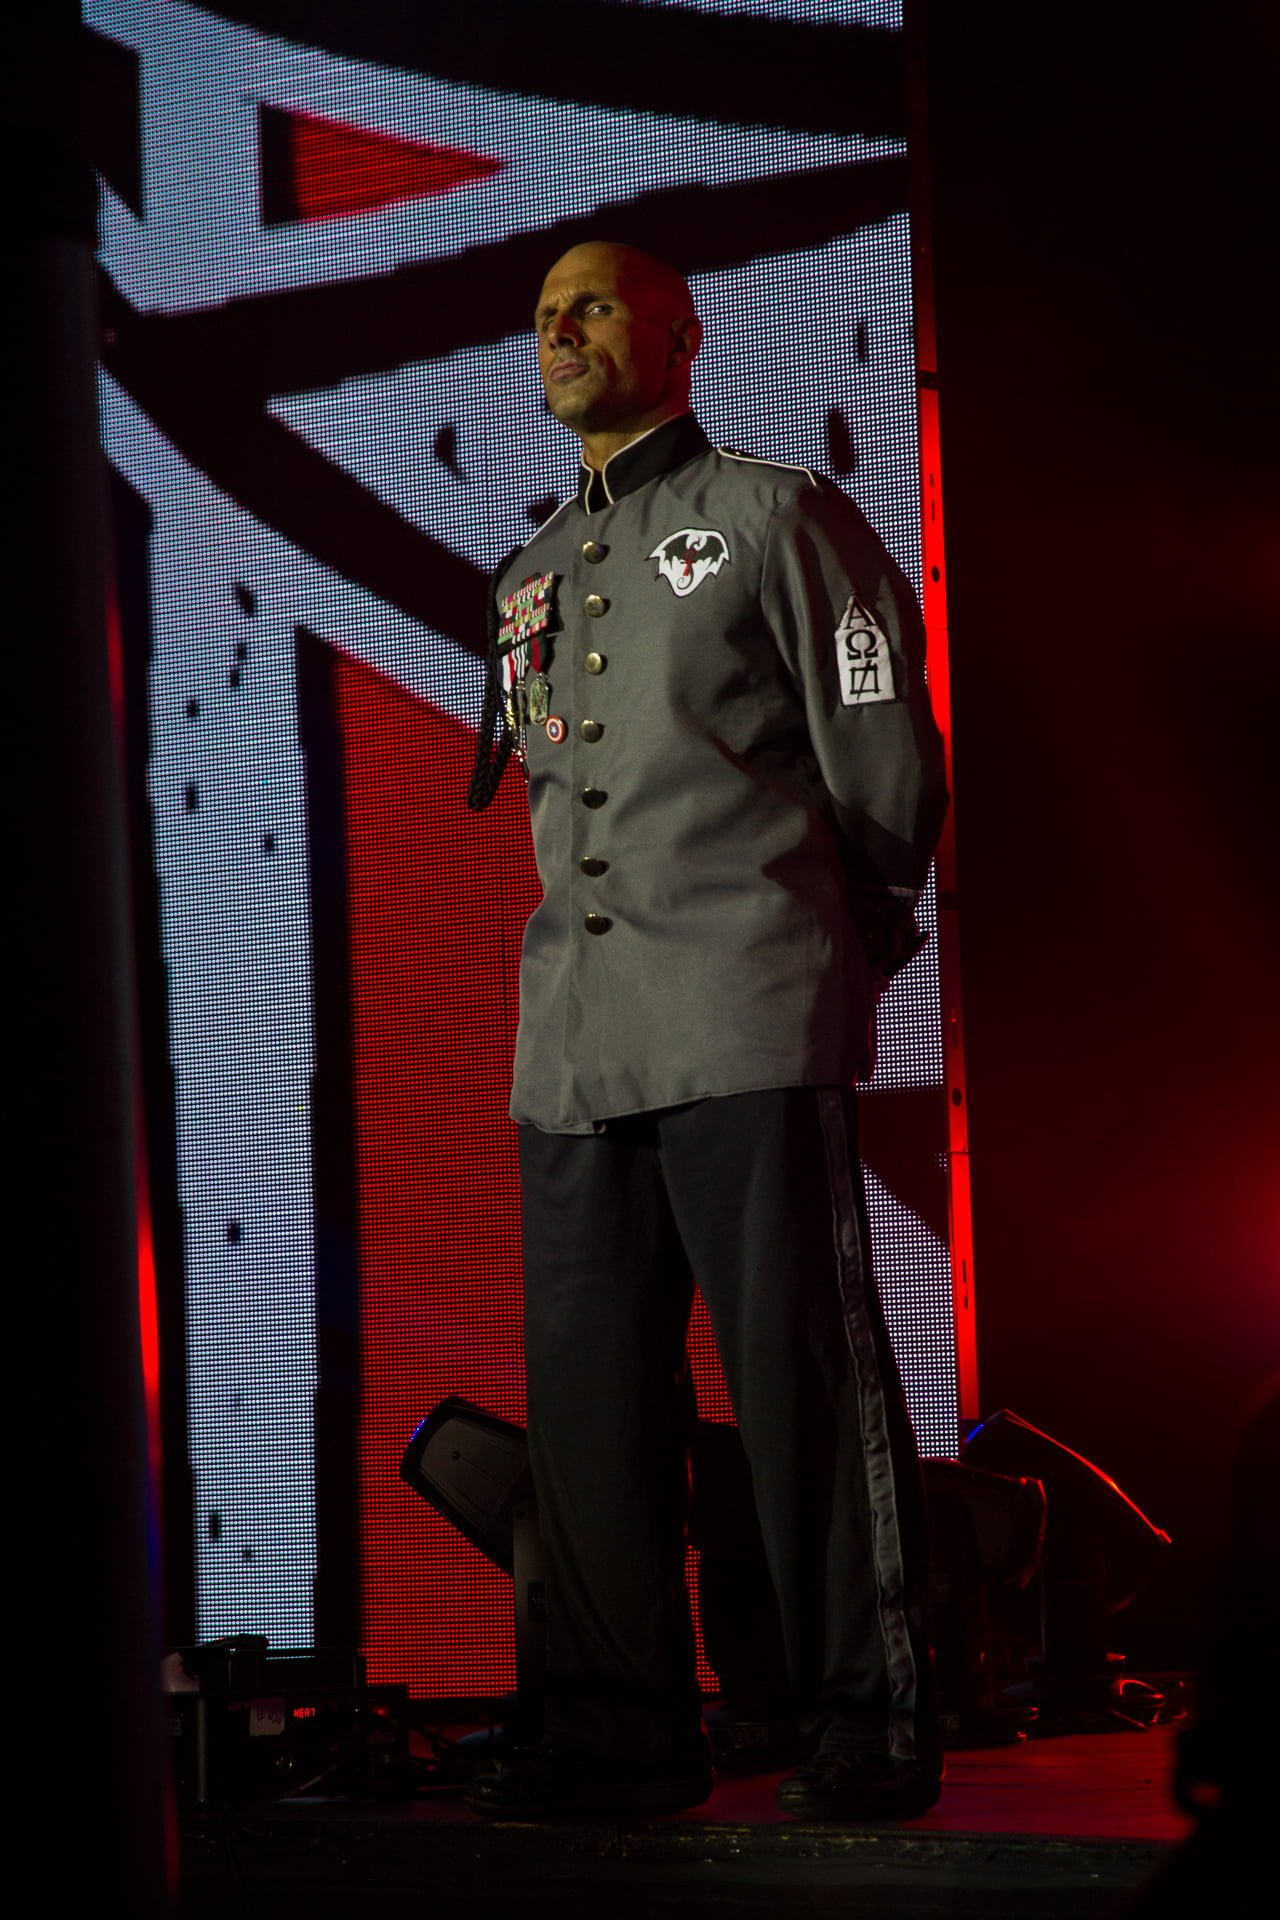 Christopher Daniels 24 Photo Credit RING OF HONOR